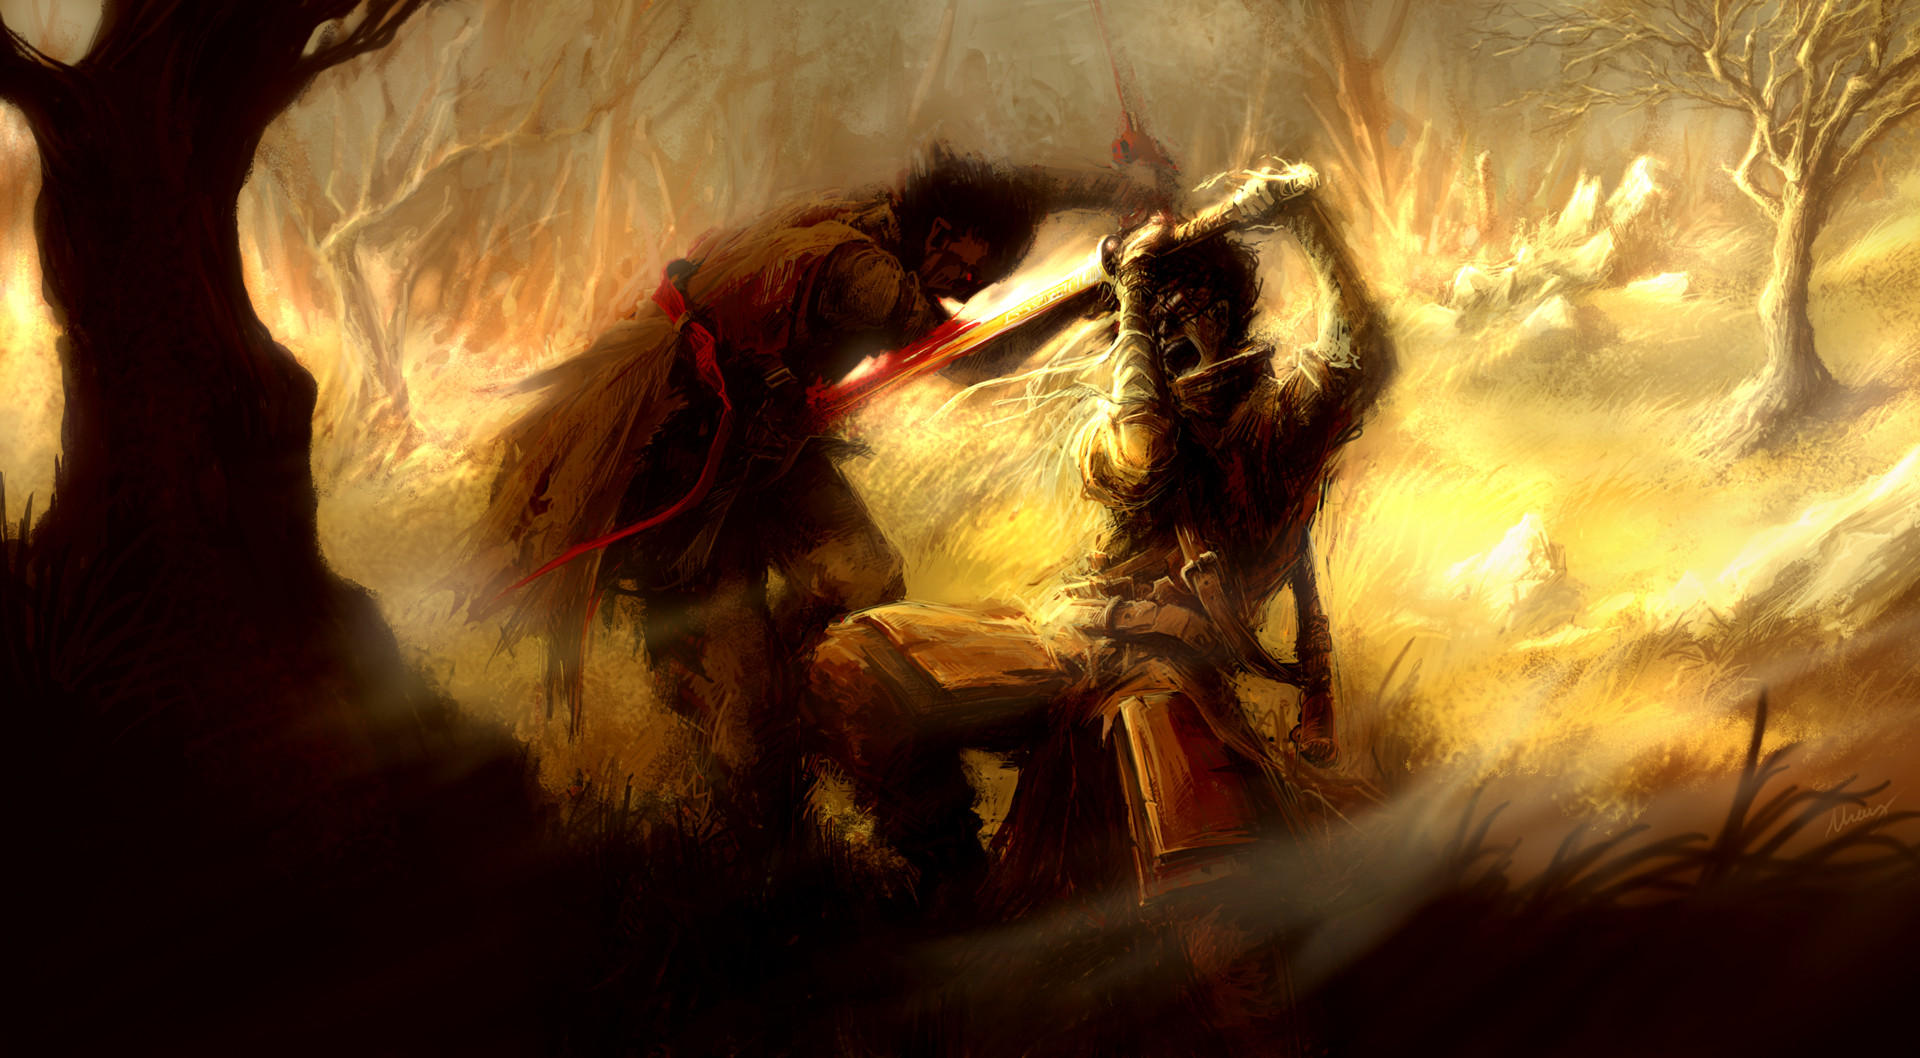 Fight by Mzag